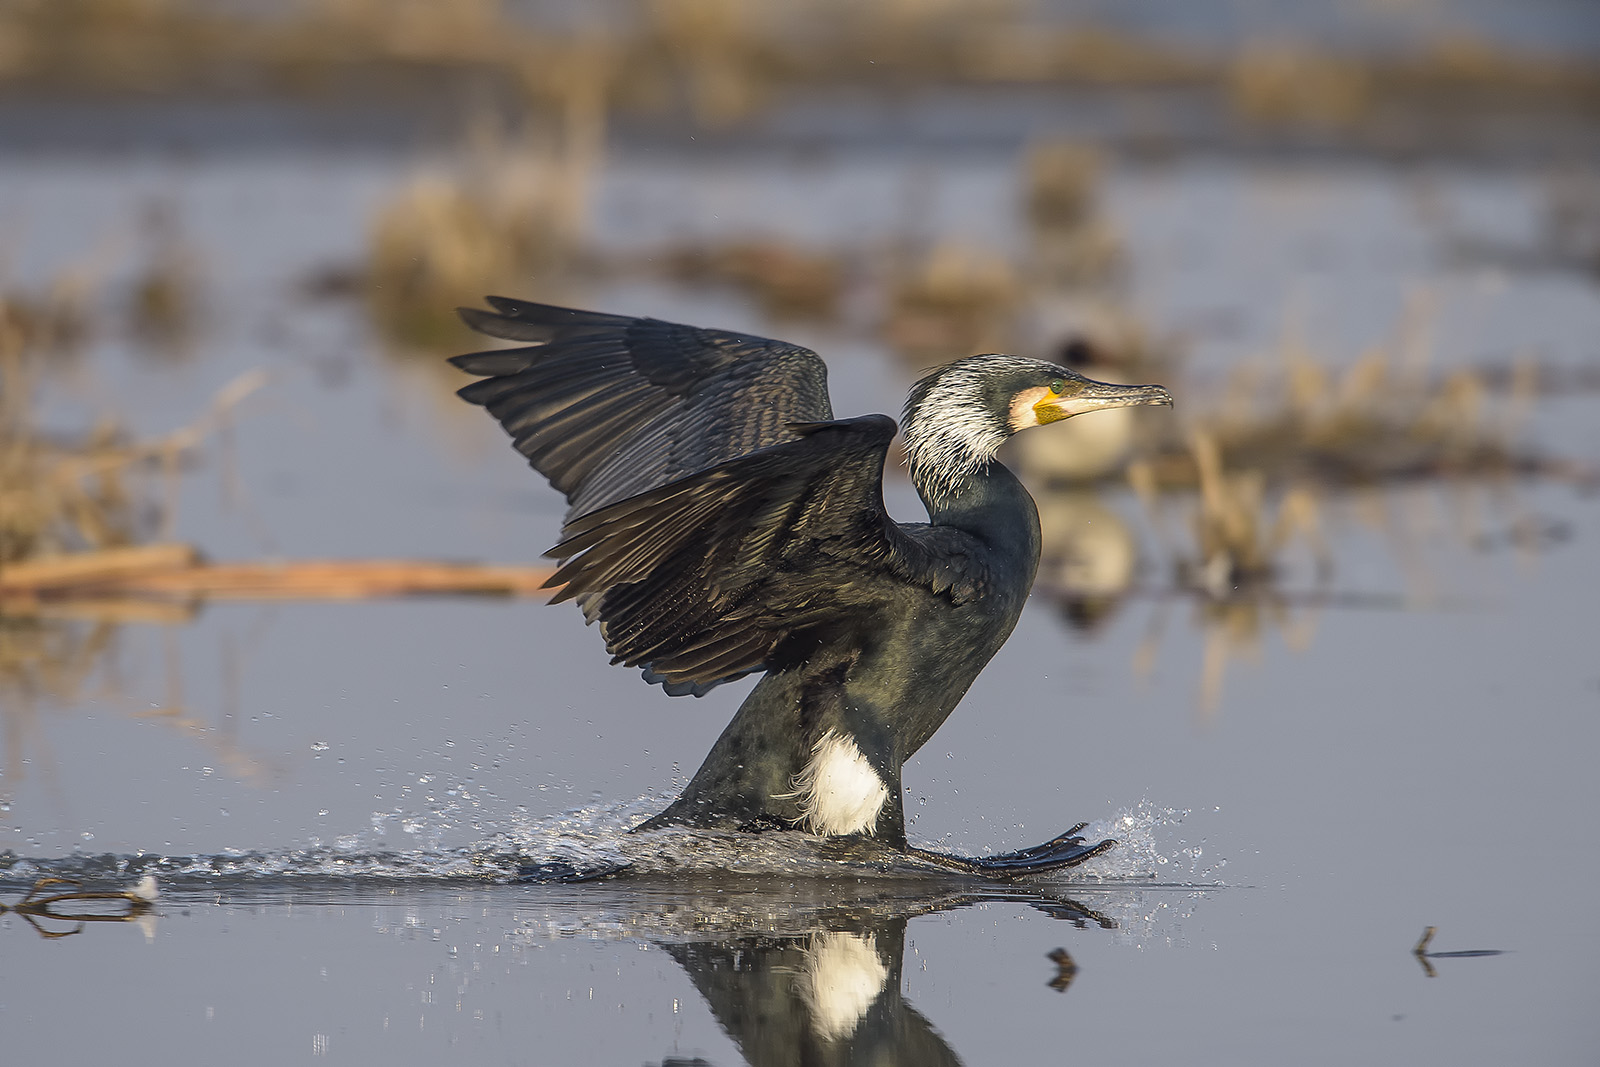 Phalacrocorax carbo – cormorano – great black cormorant